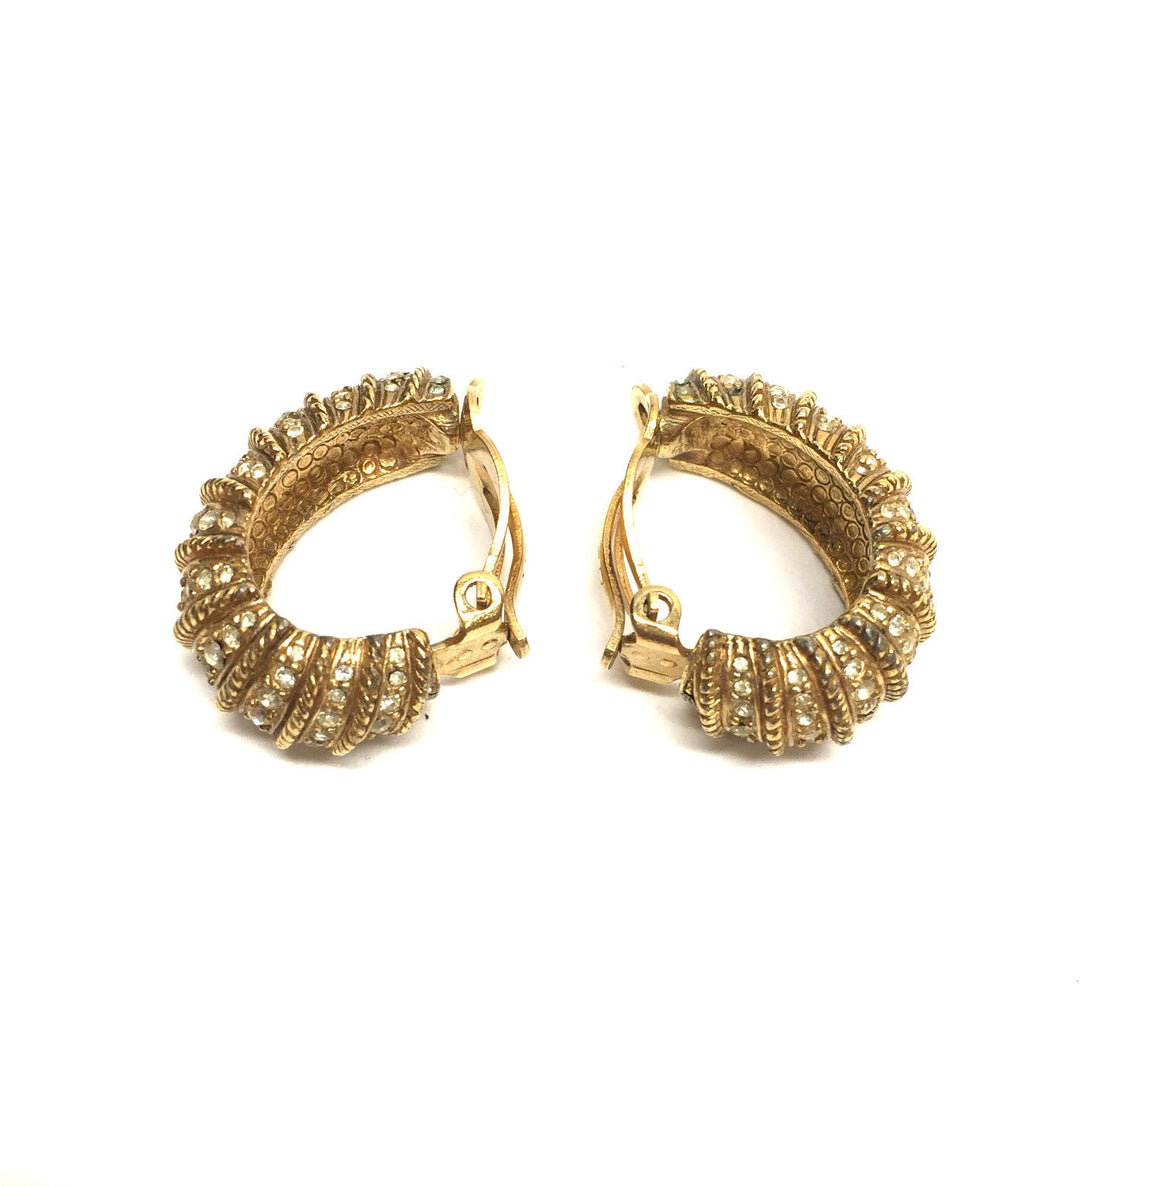 bisbiz.com CINER  Vintage  Gilt Metal Crystal-Pave Rows Clip-on Earrings - Bis Luxury Resale